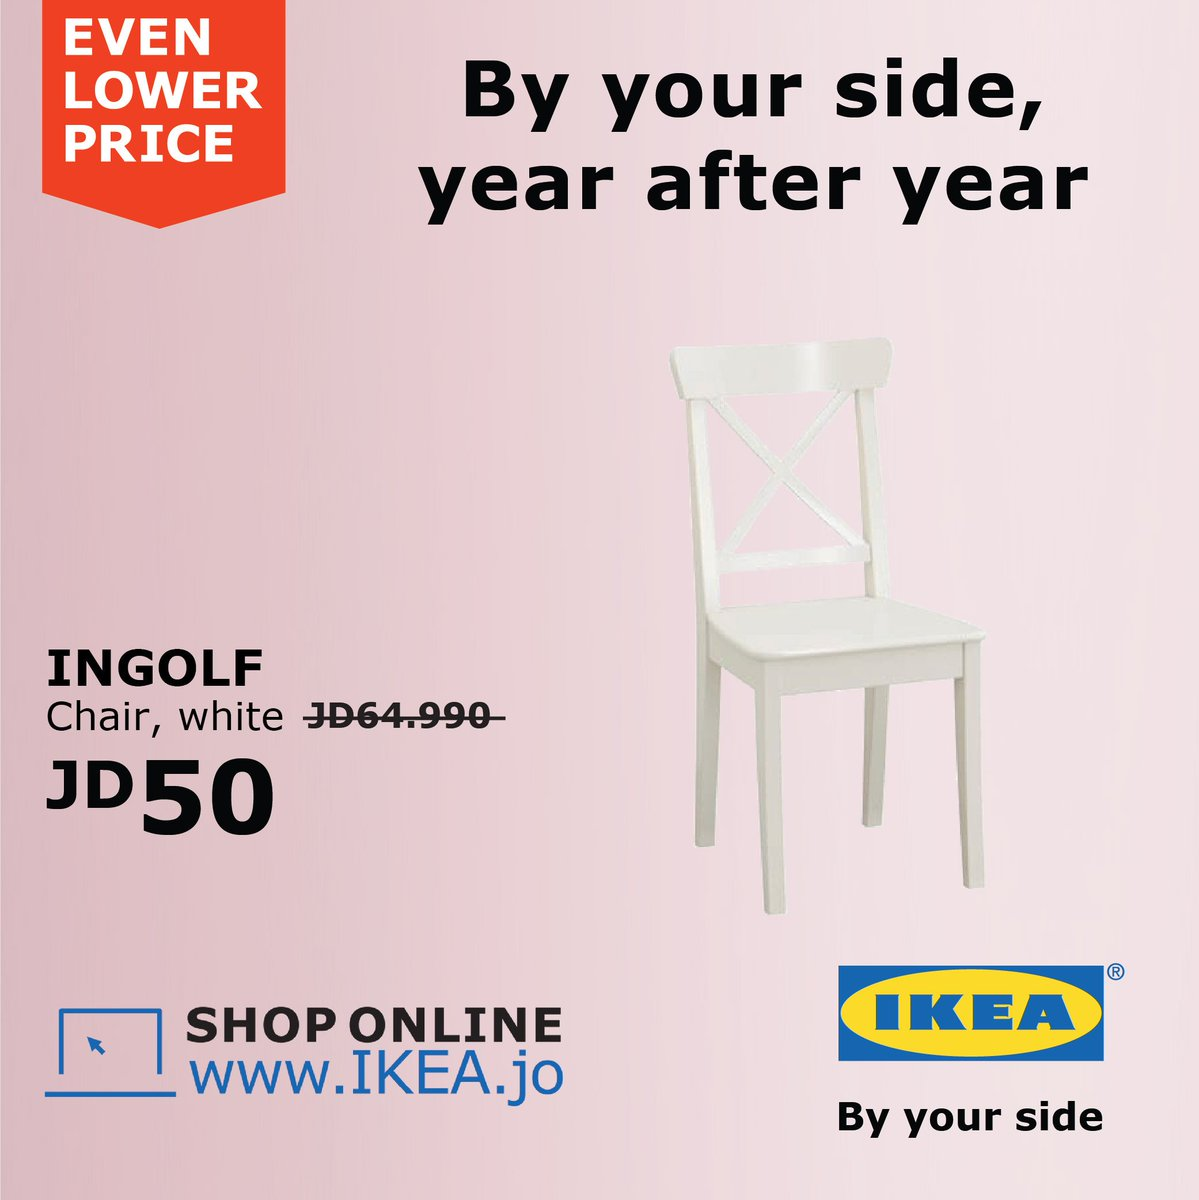 Ikea Jordan On Twitter Even Lower Price This Year More Of